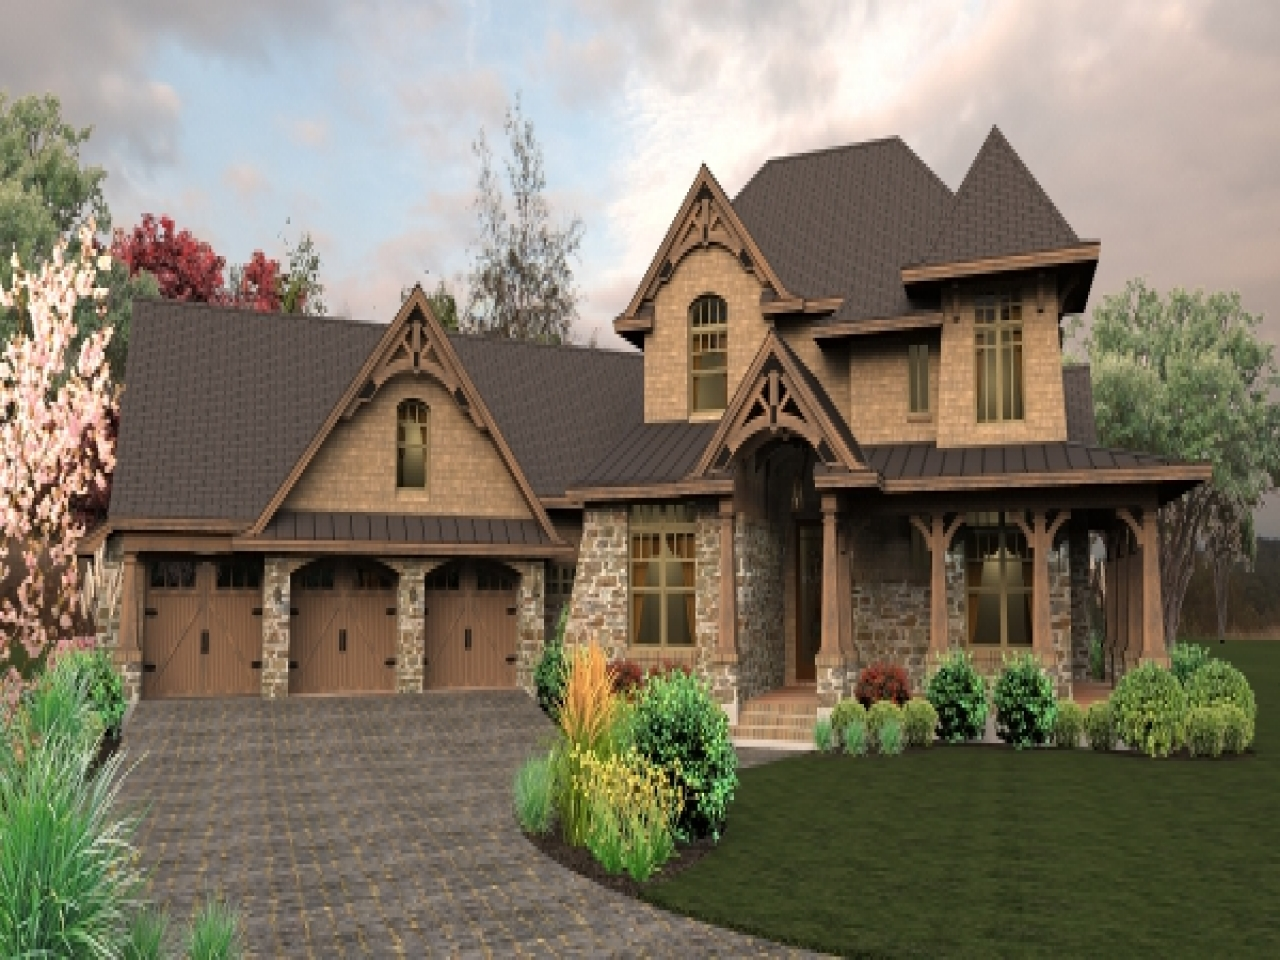 1 5 Story Craftsman House Plans 2 Story Craftsman House